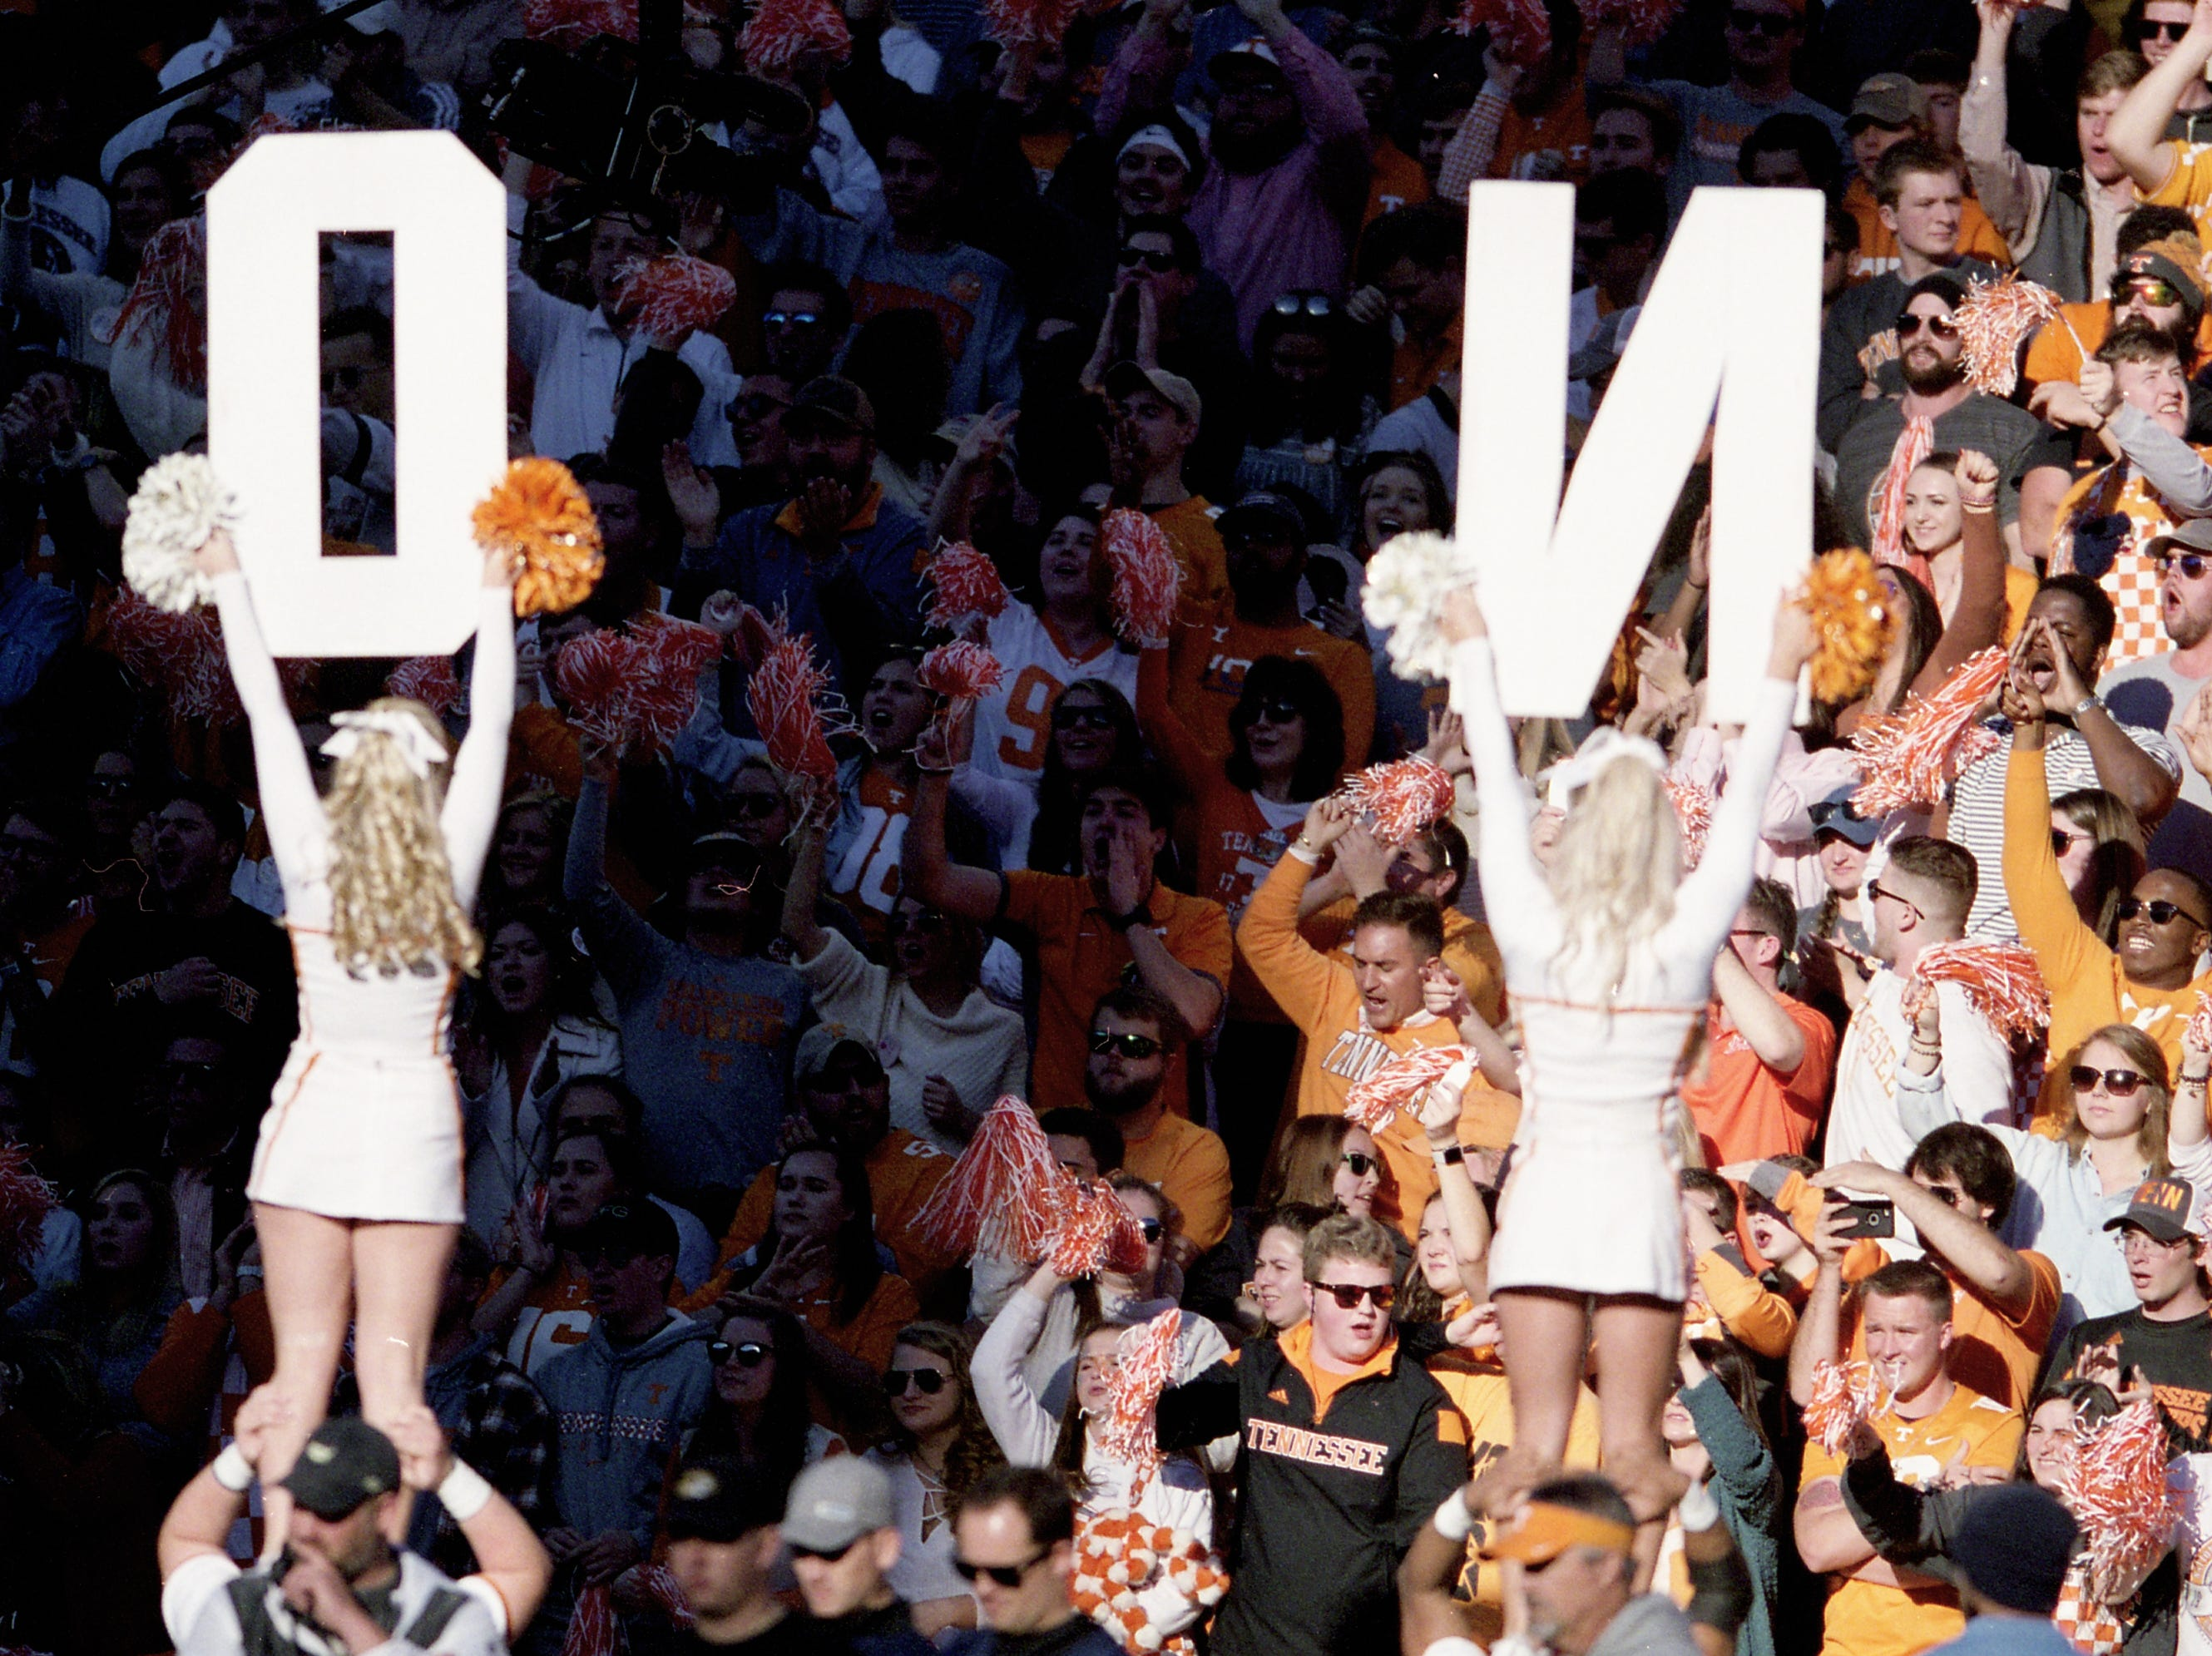 Cheerleaders hold letters during a game between Tennessee and Missouri at Neyland Stadium in Knoxville, Tennessee on Saturday, November 17, 2018.